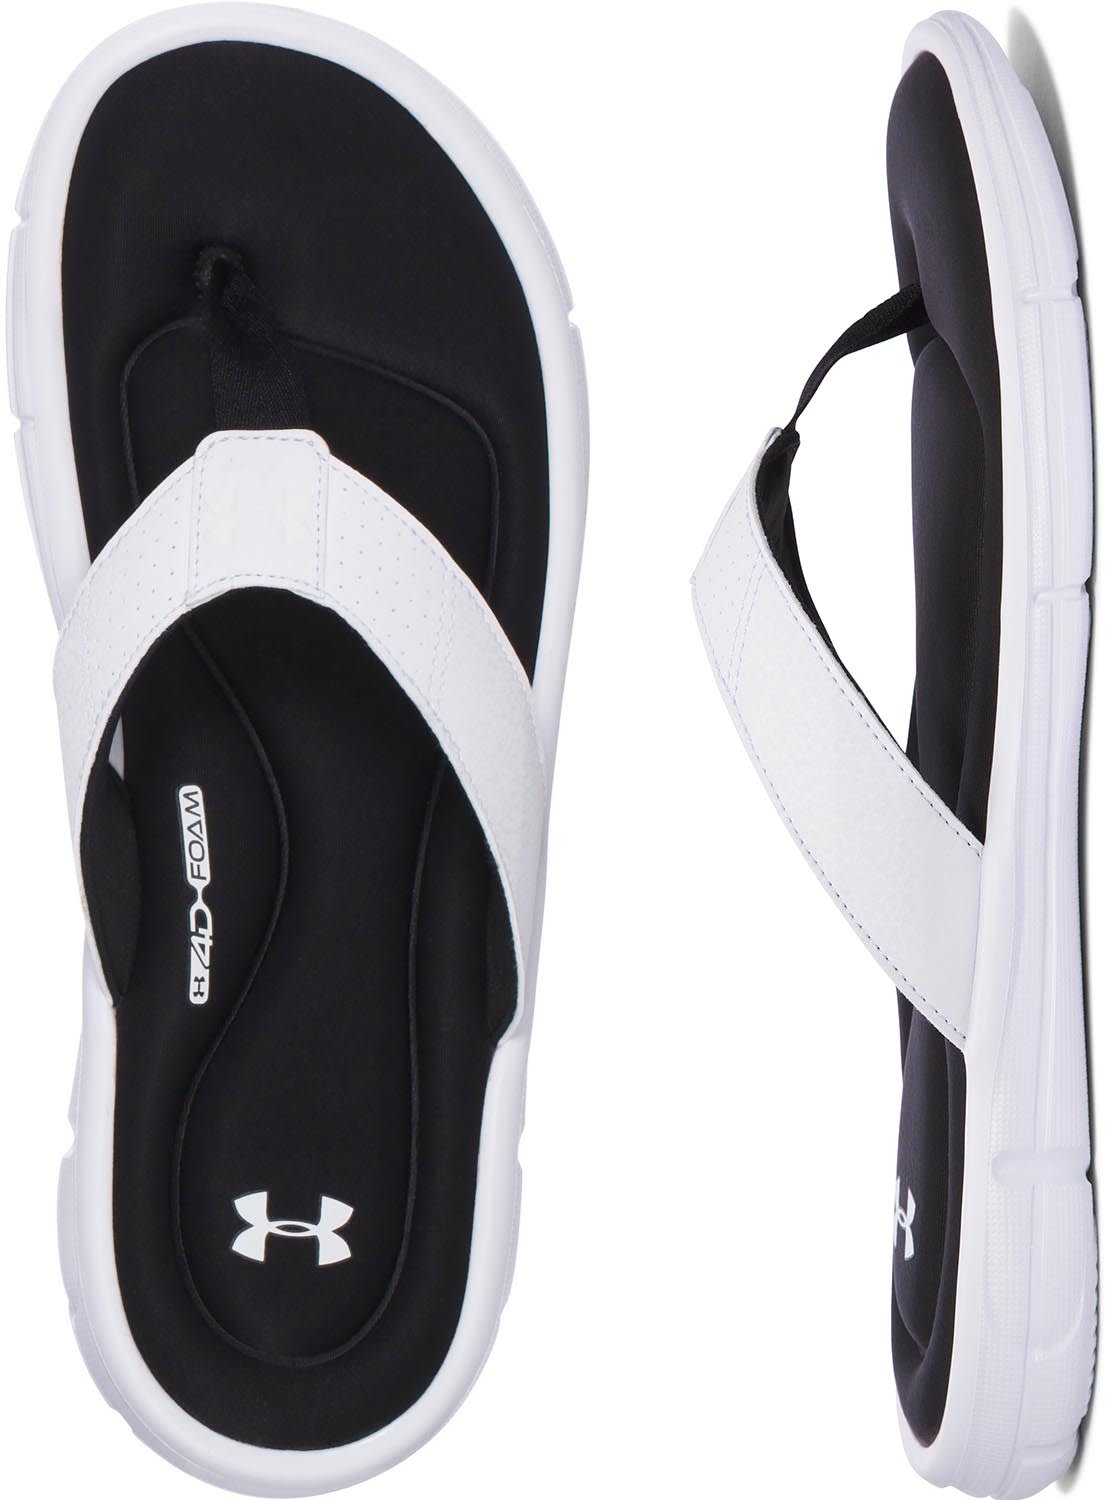 Under Armour Ignite II T Sandals ua0ig2t10bms18zz-under-armour-sandals